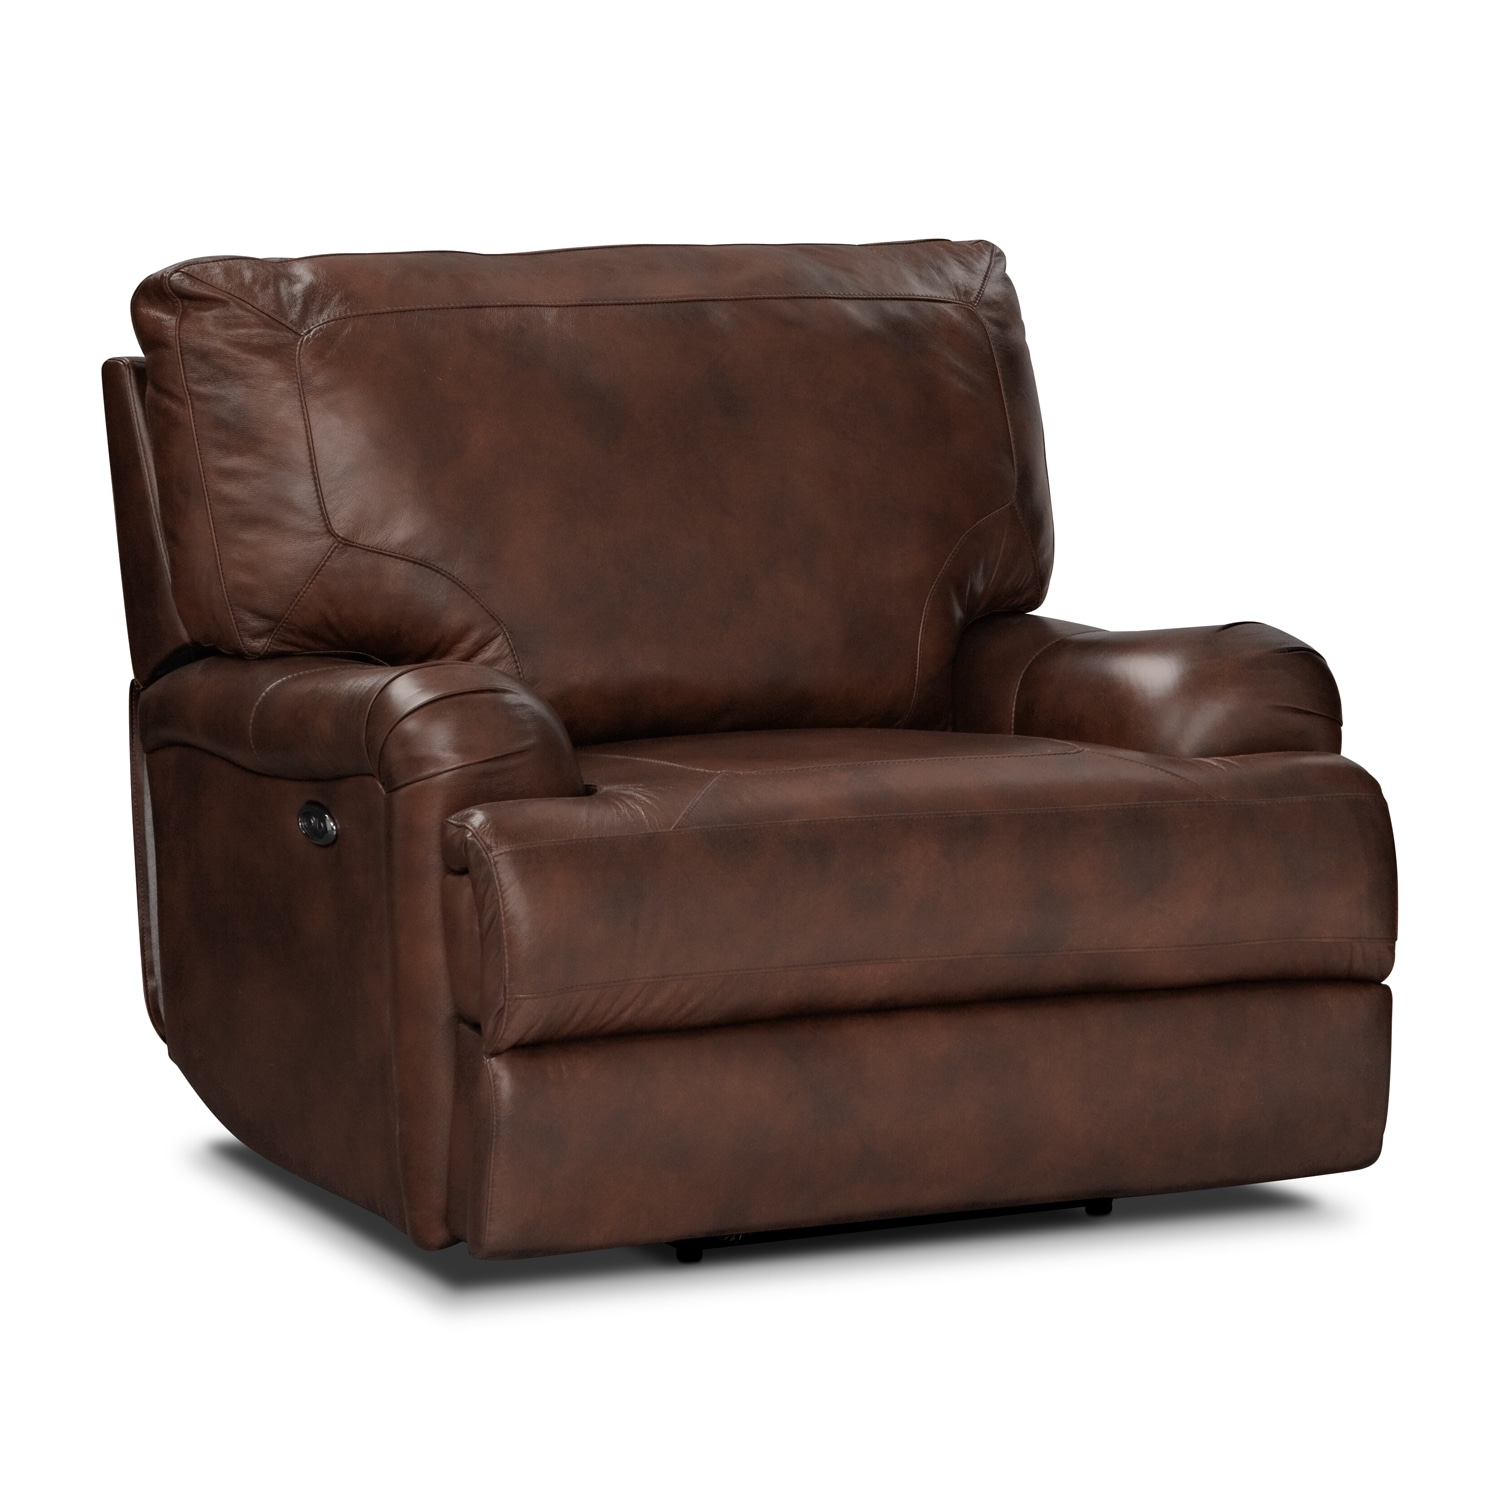 Kingsway Power Recliner